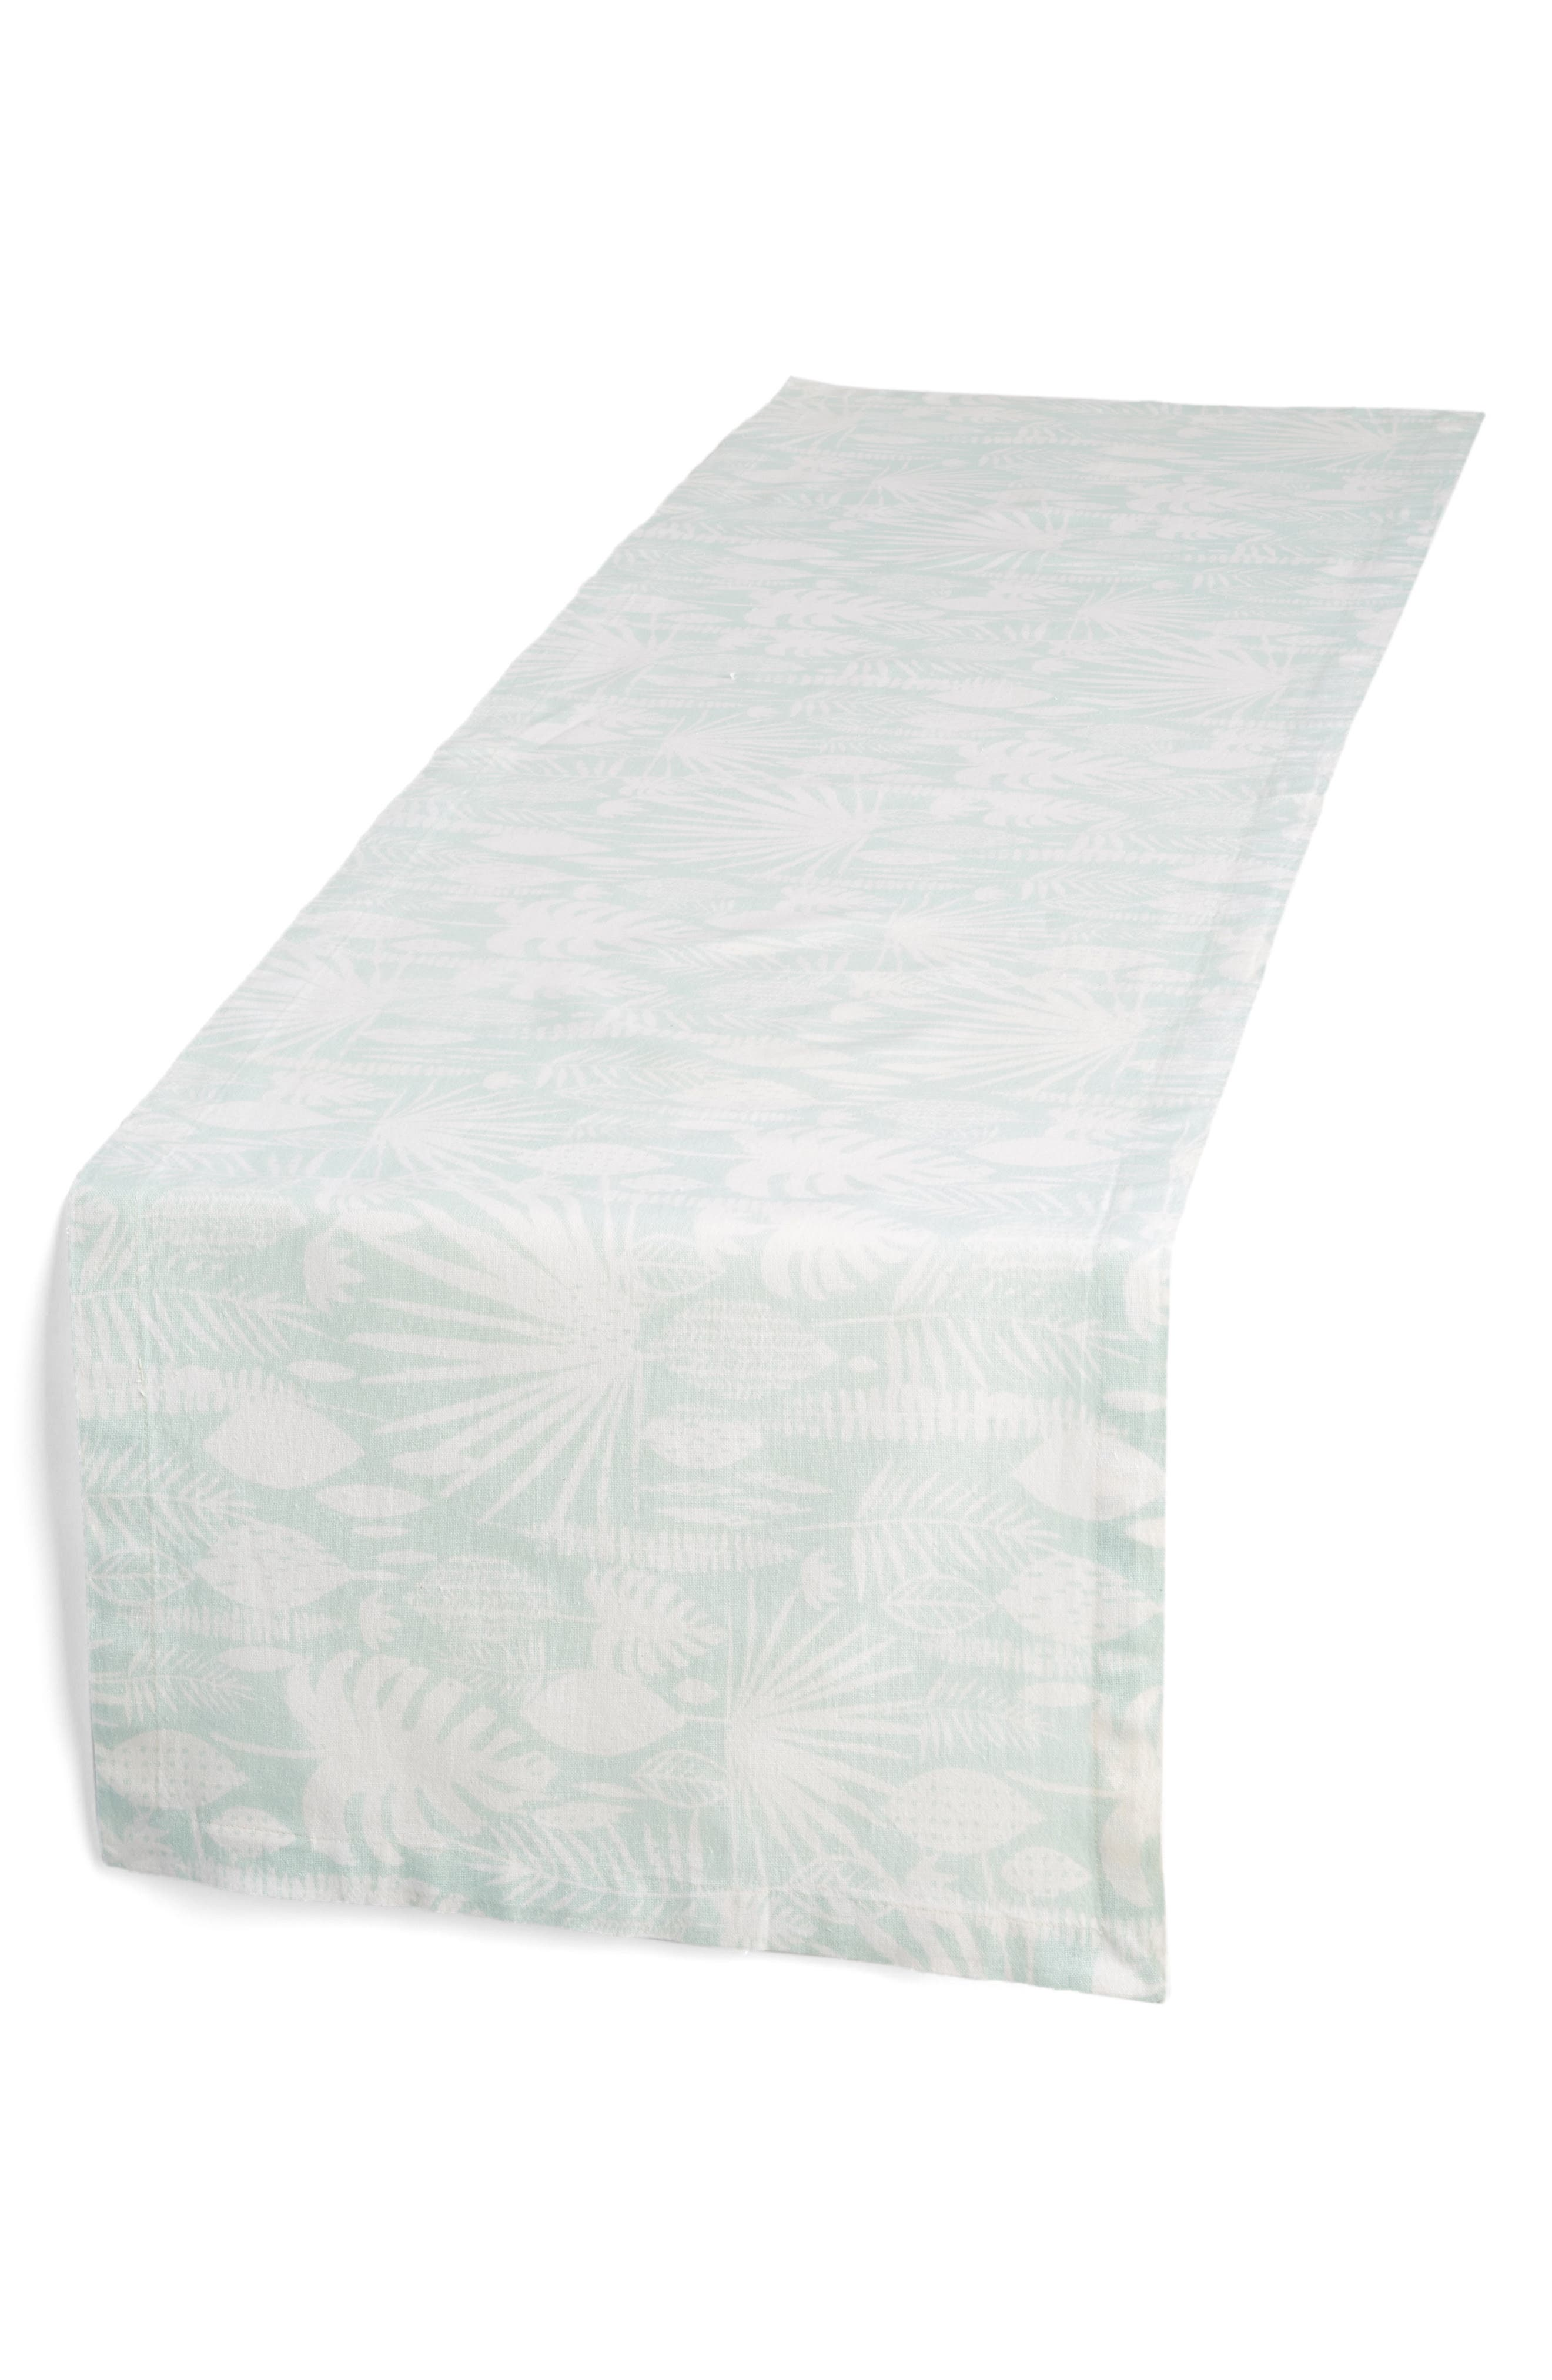 Tropical Leaves Table Runner,                         Main,                         color, 440